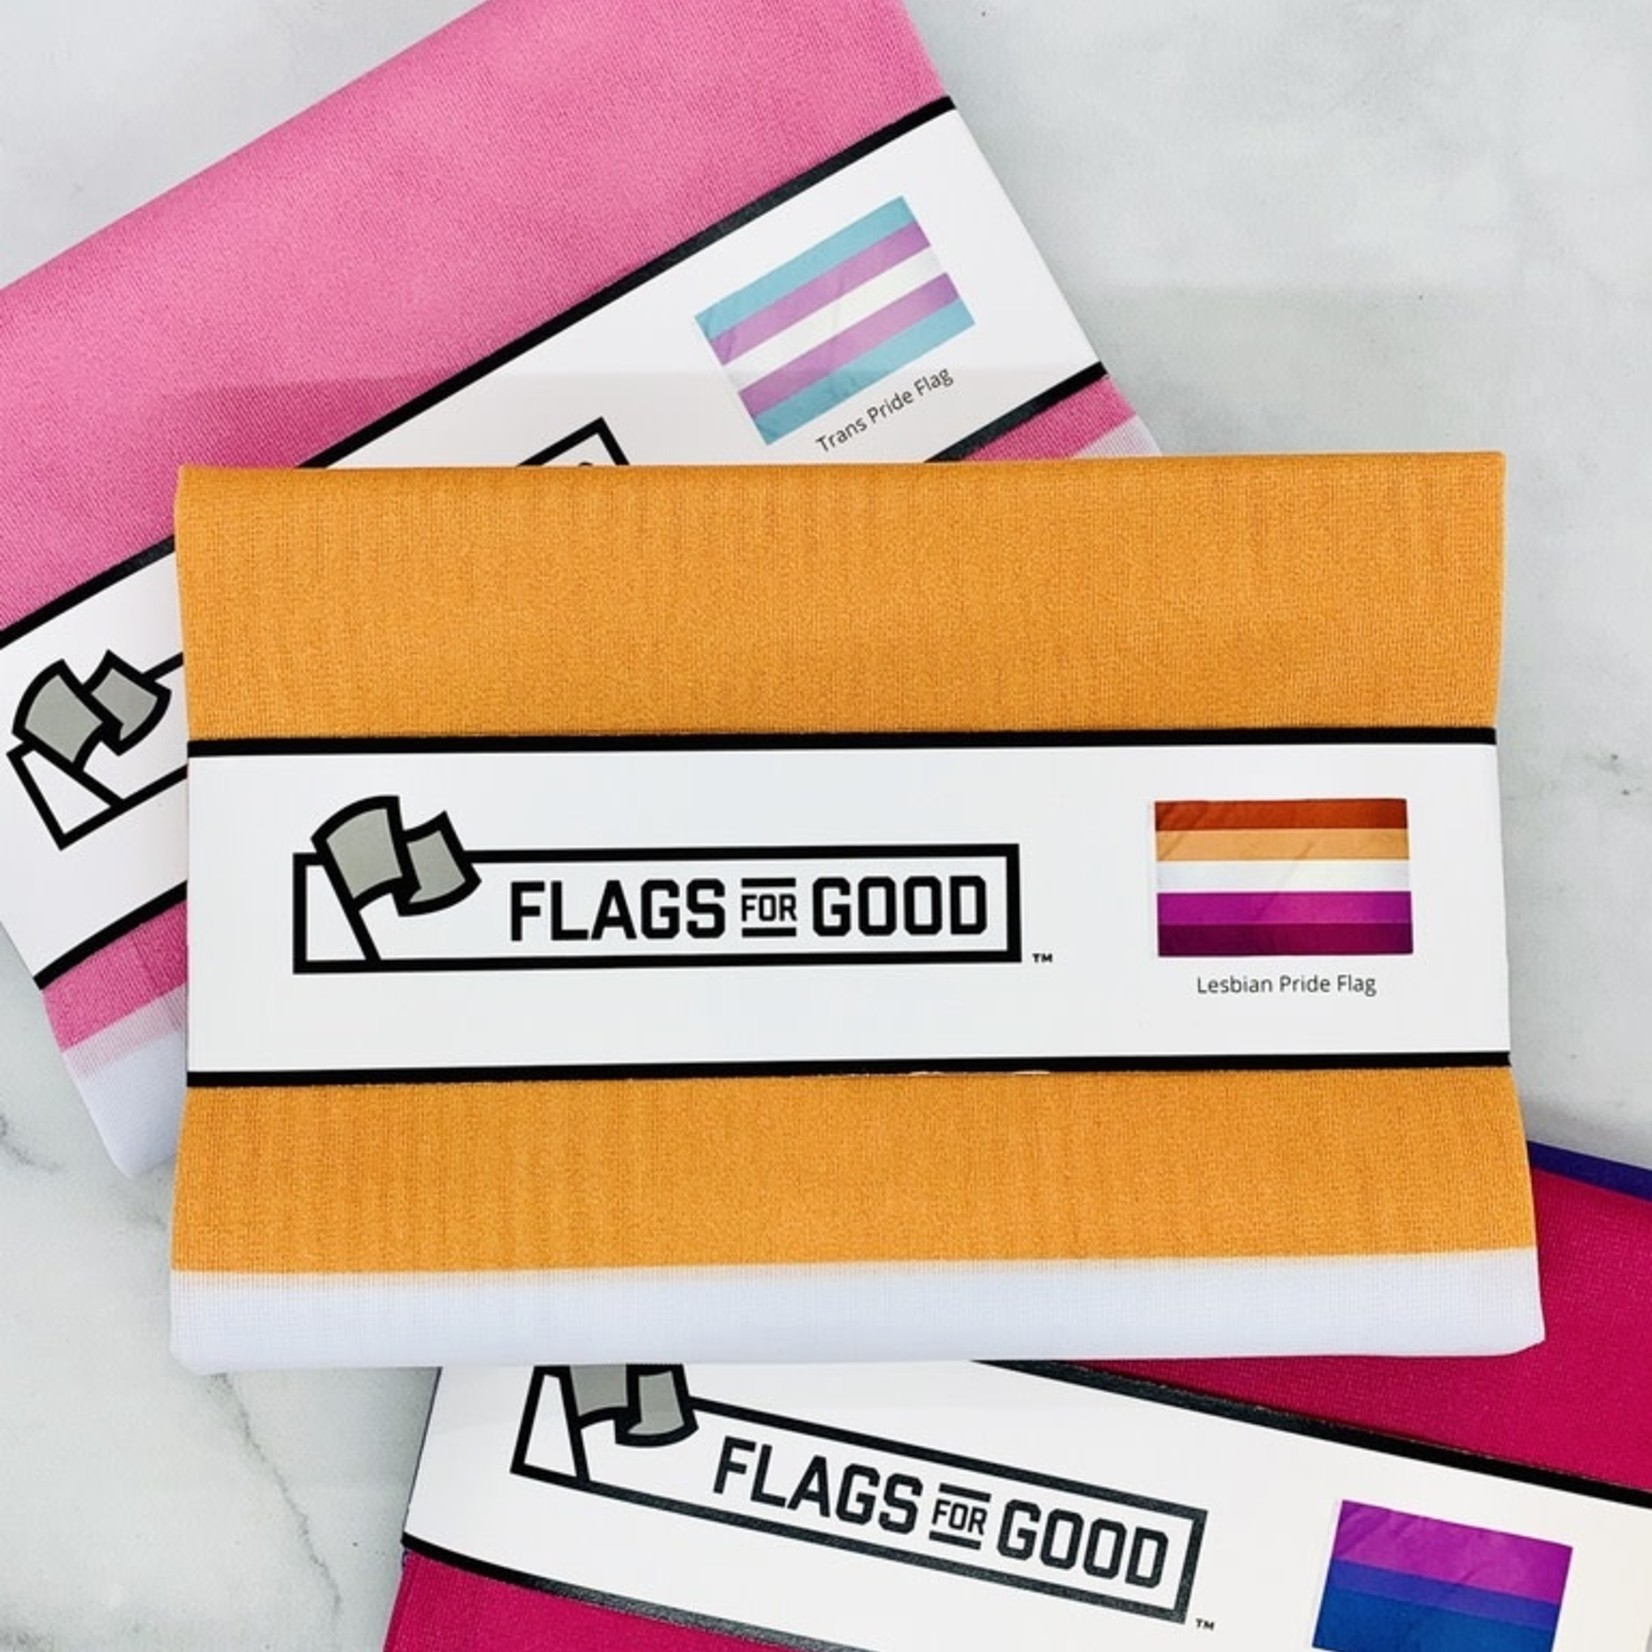 Flags for Good Flags for Good LGBTQIA+: